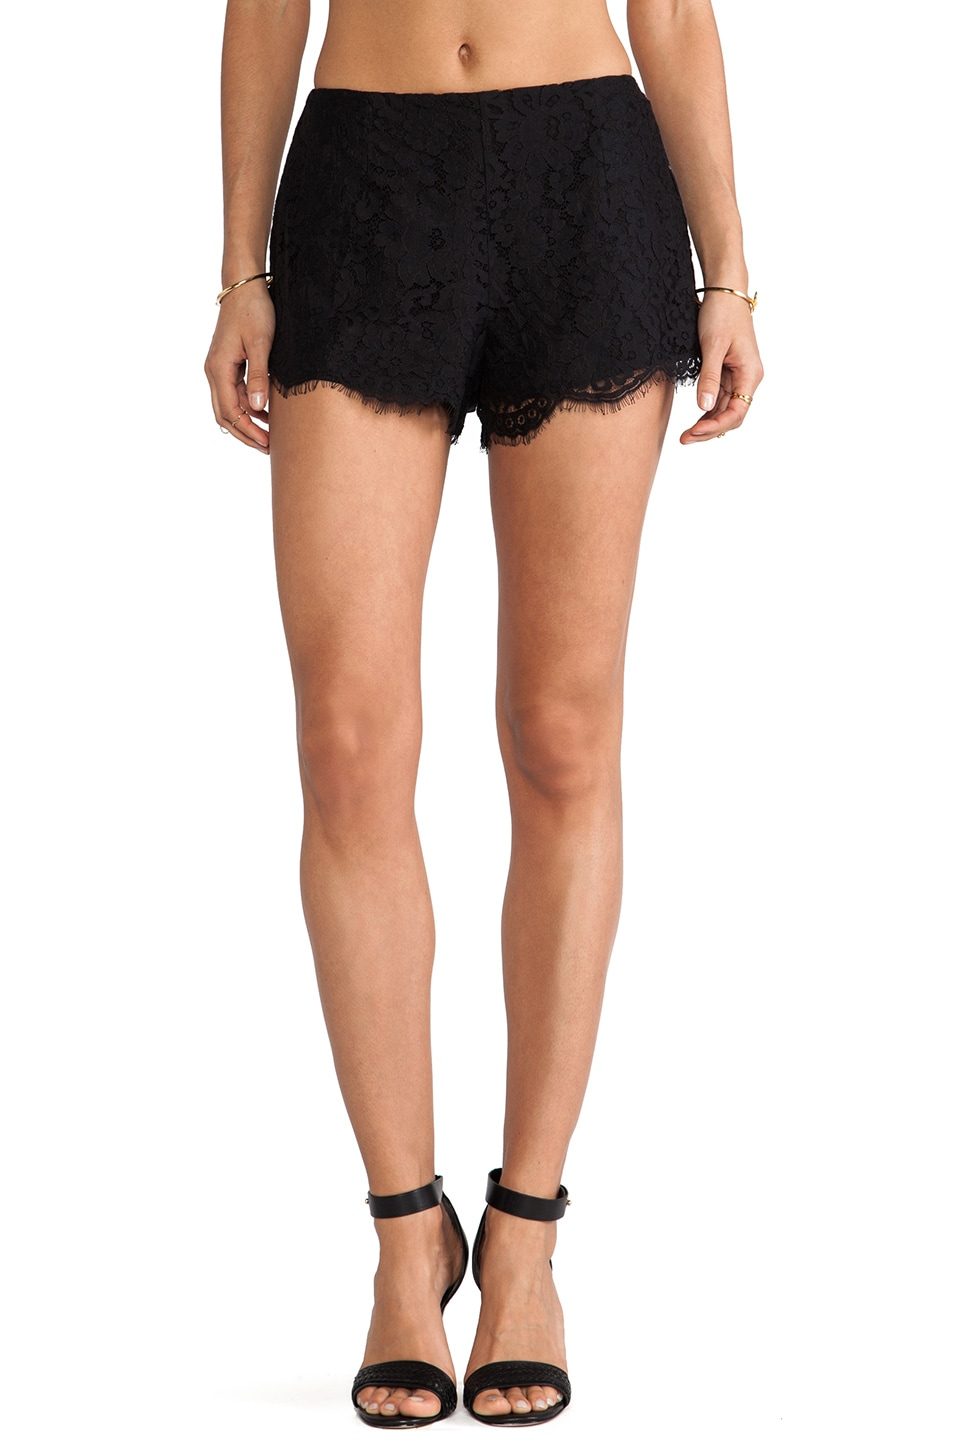 keepsake Almost Over Short in Black Lace